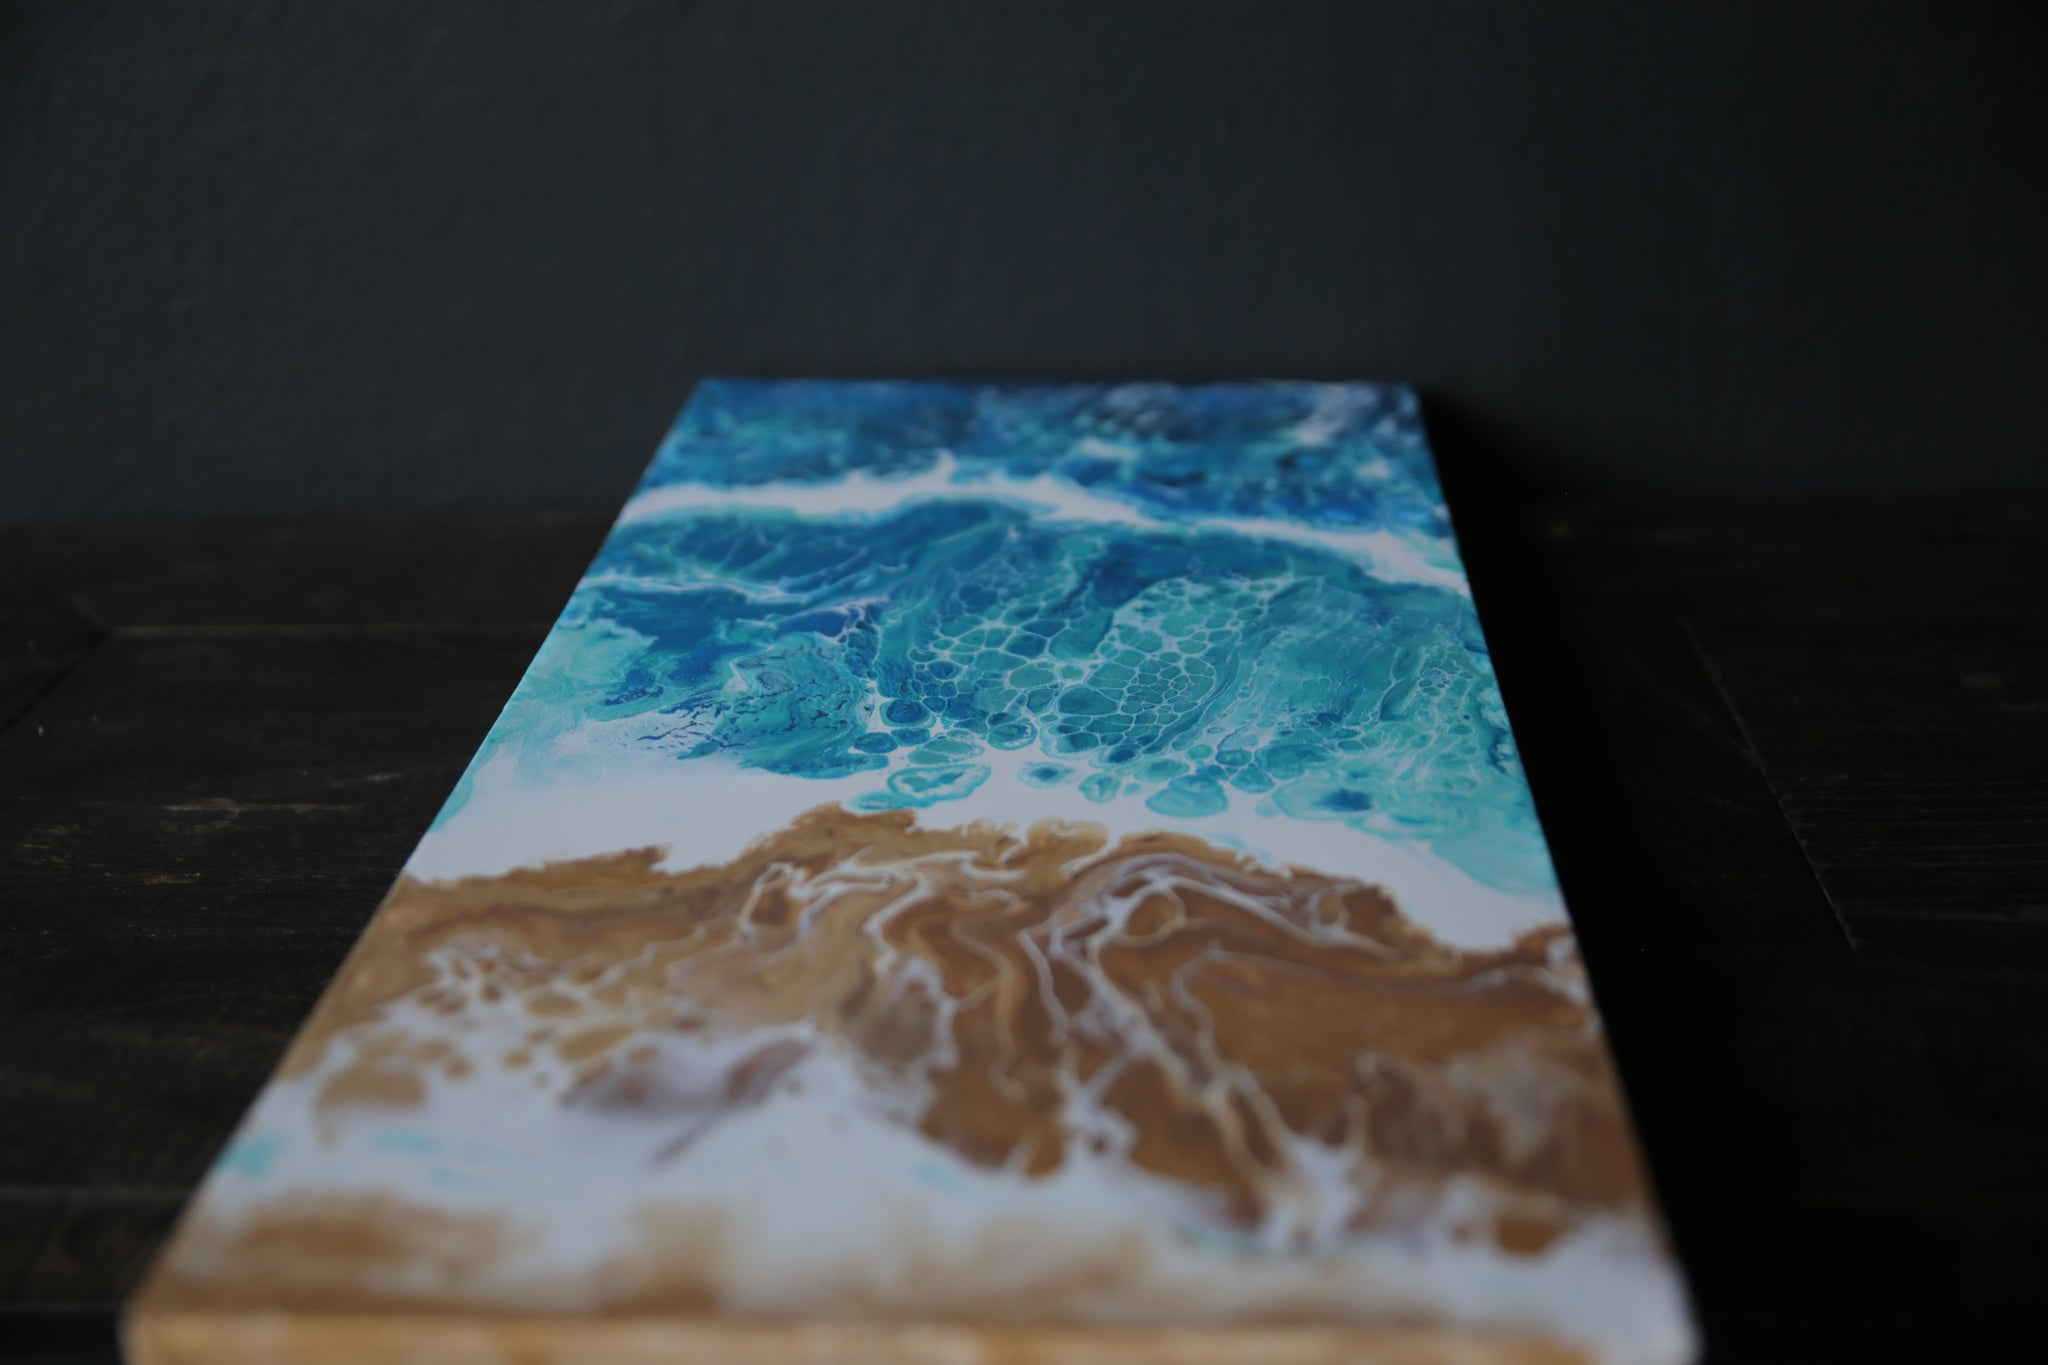 Beach Scene Painting on Canvas - Acrylic Pour Technique - Ocean #3